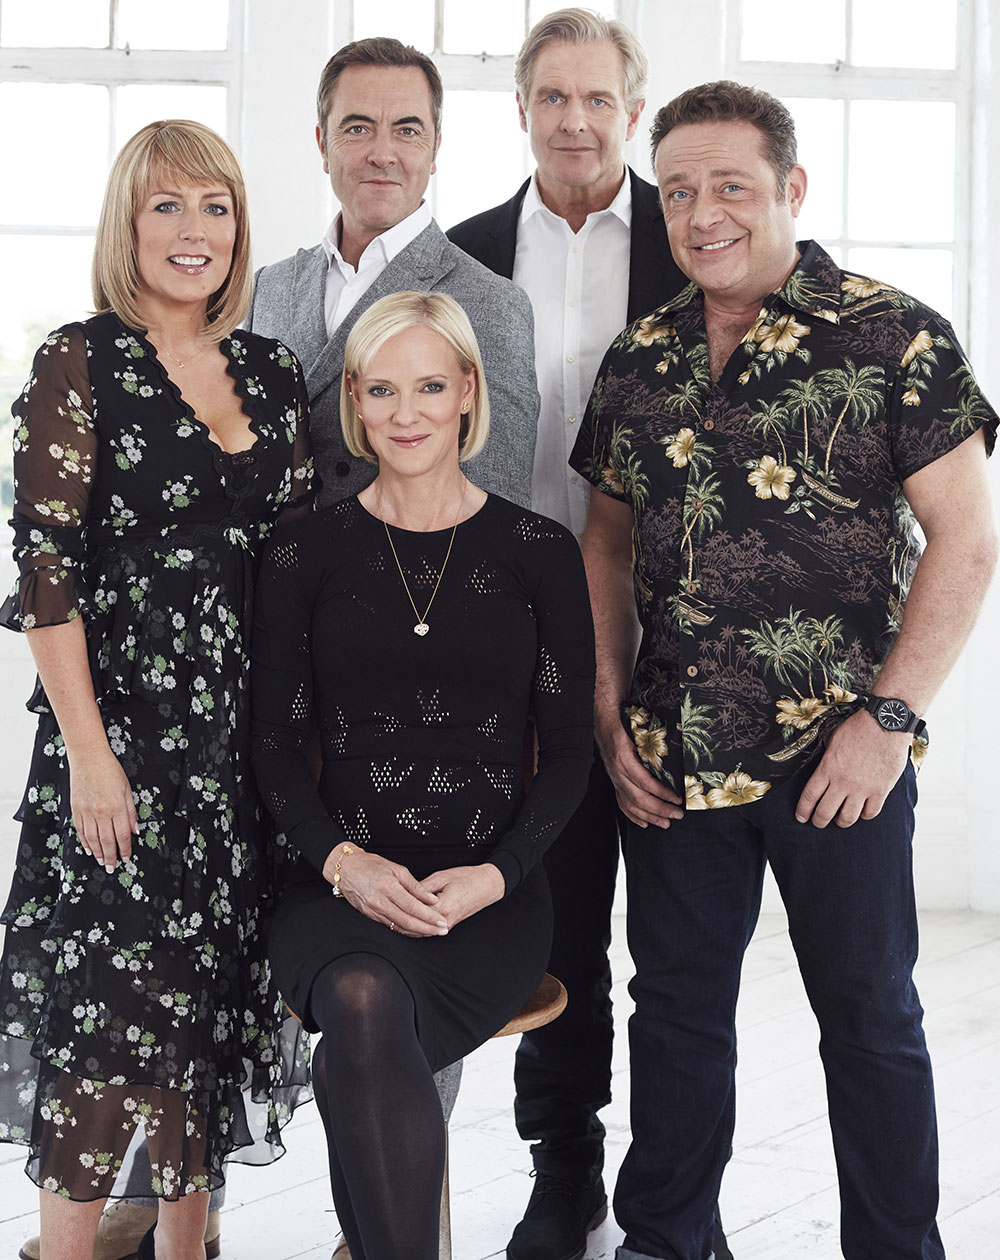 The best buds were reunited last year for a revival of Cold Feet